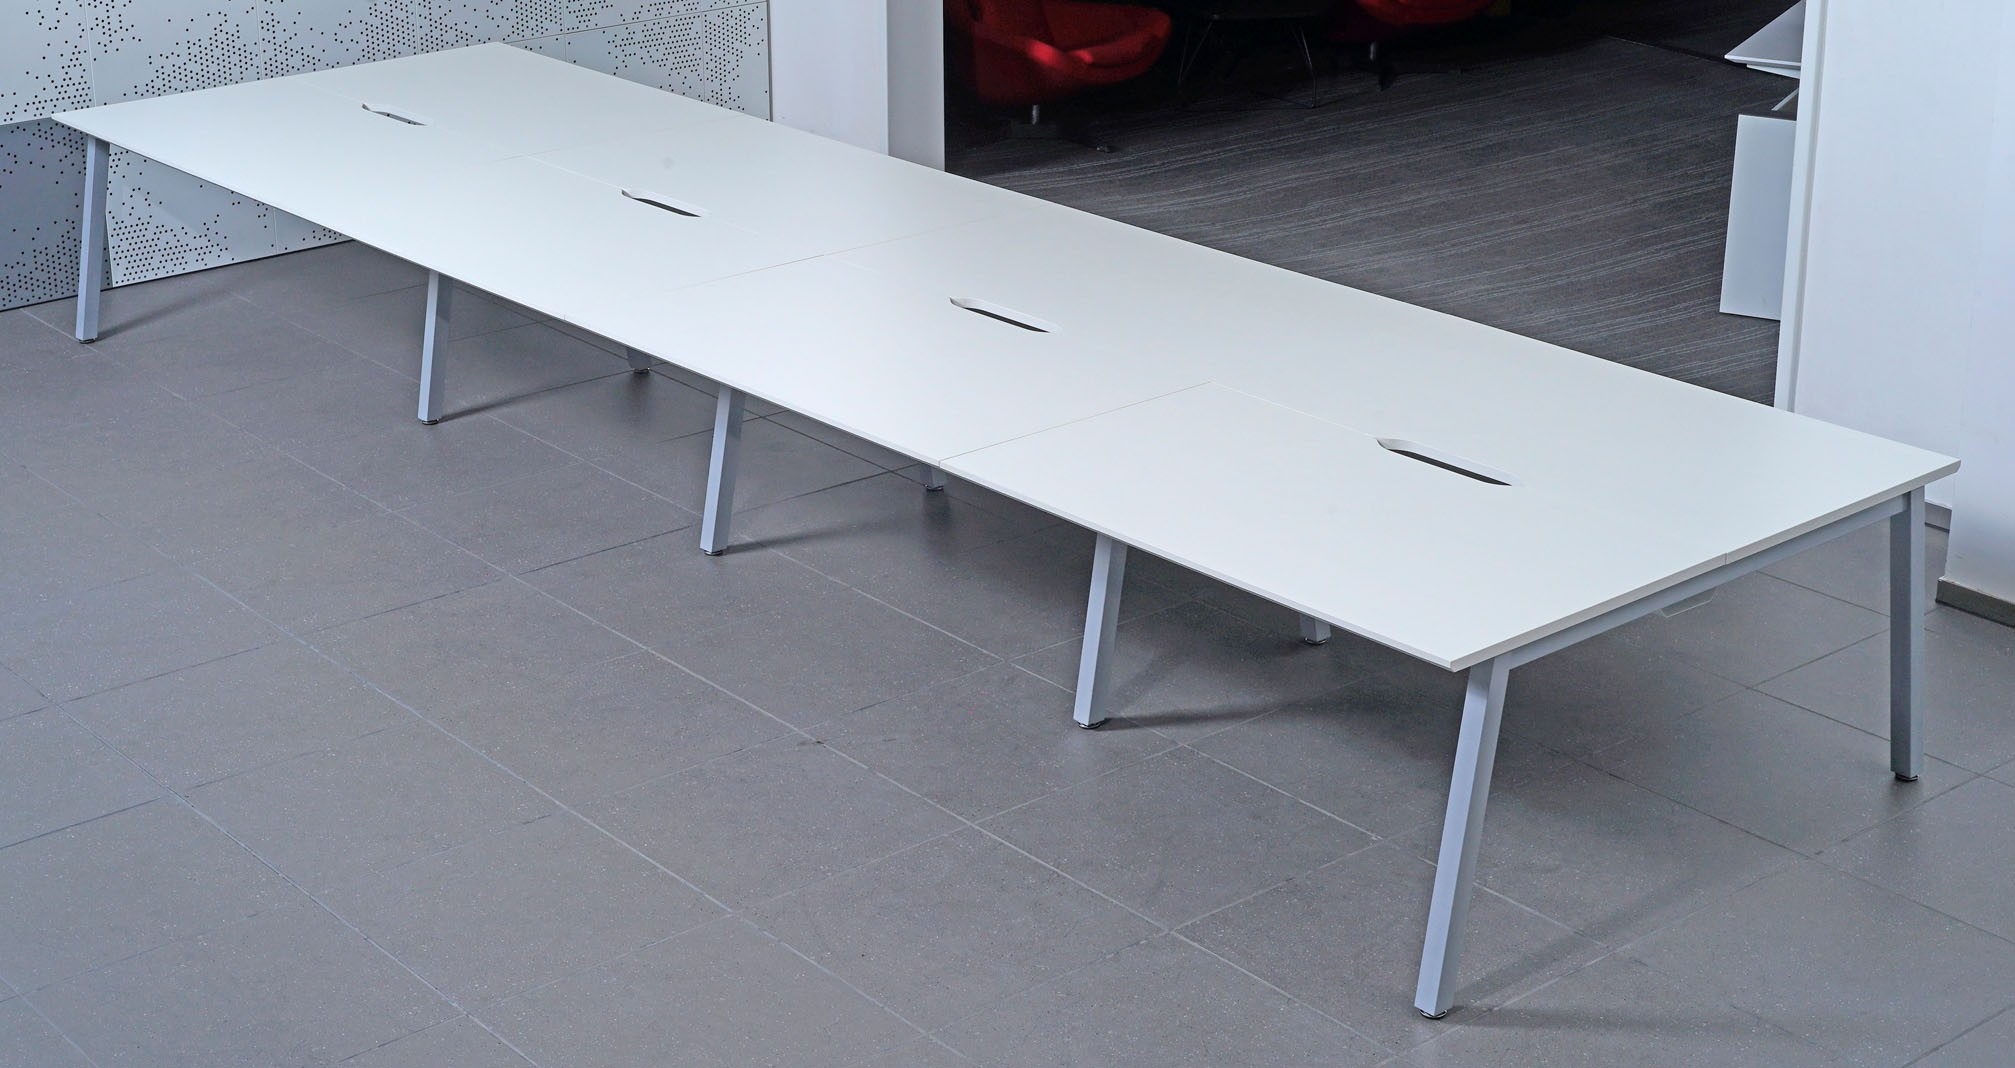 Bench 1400mm Back to Back Desk Add-on (WxDxH) 1400x800x730mm (White Tops, Leg Colour must be specified)